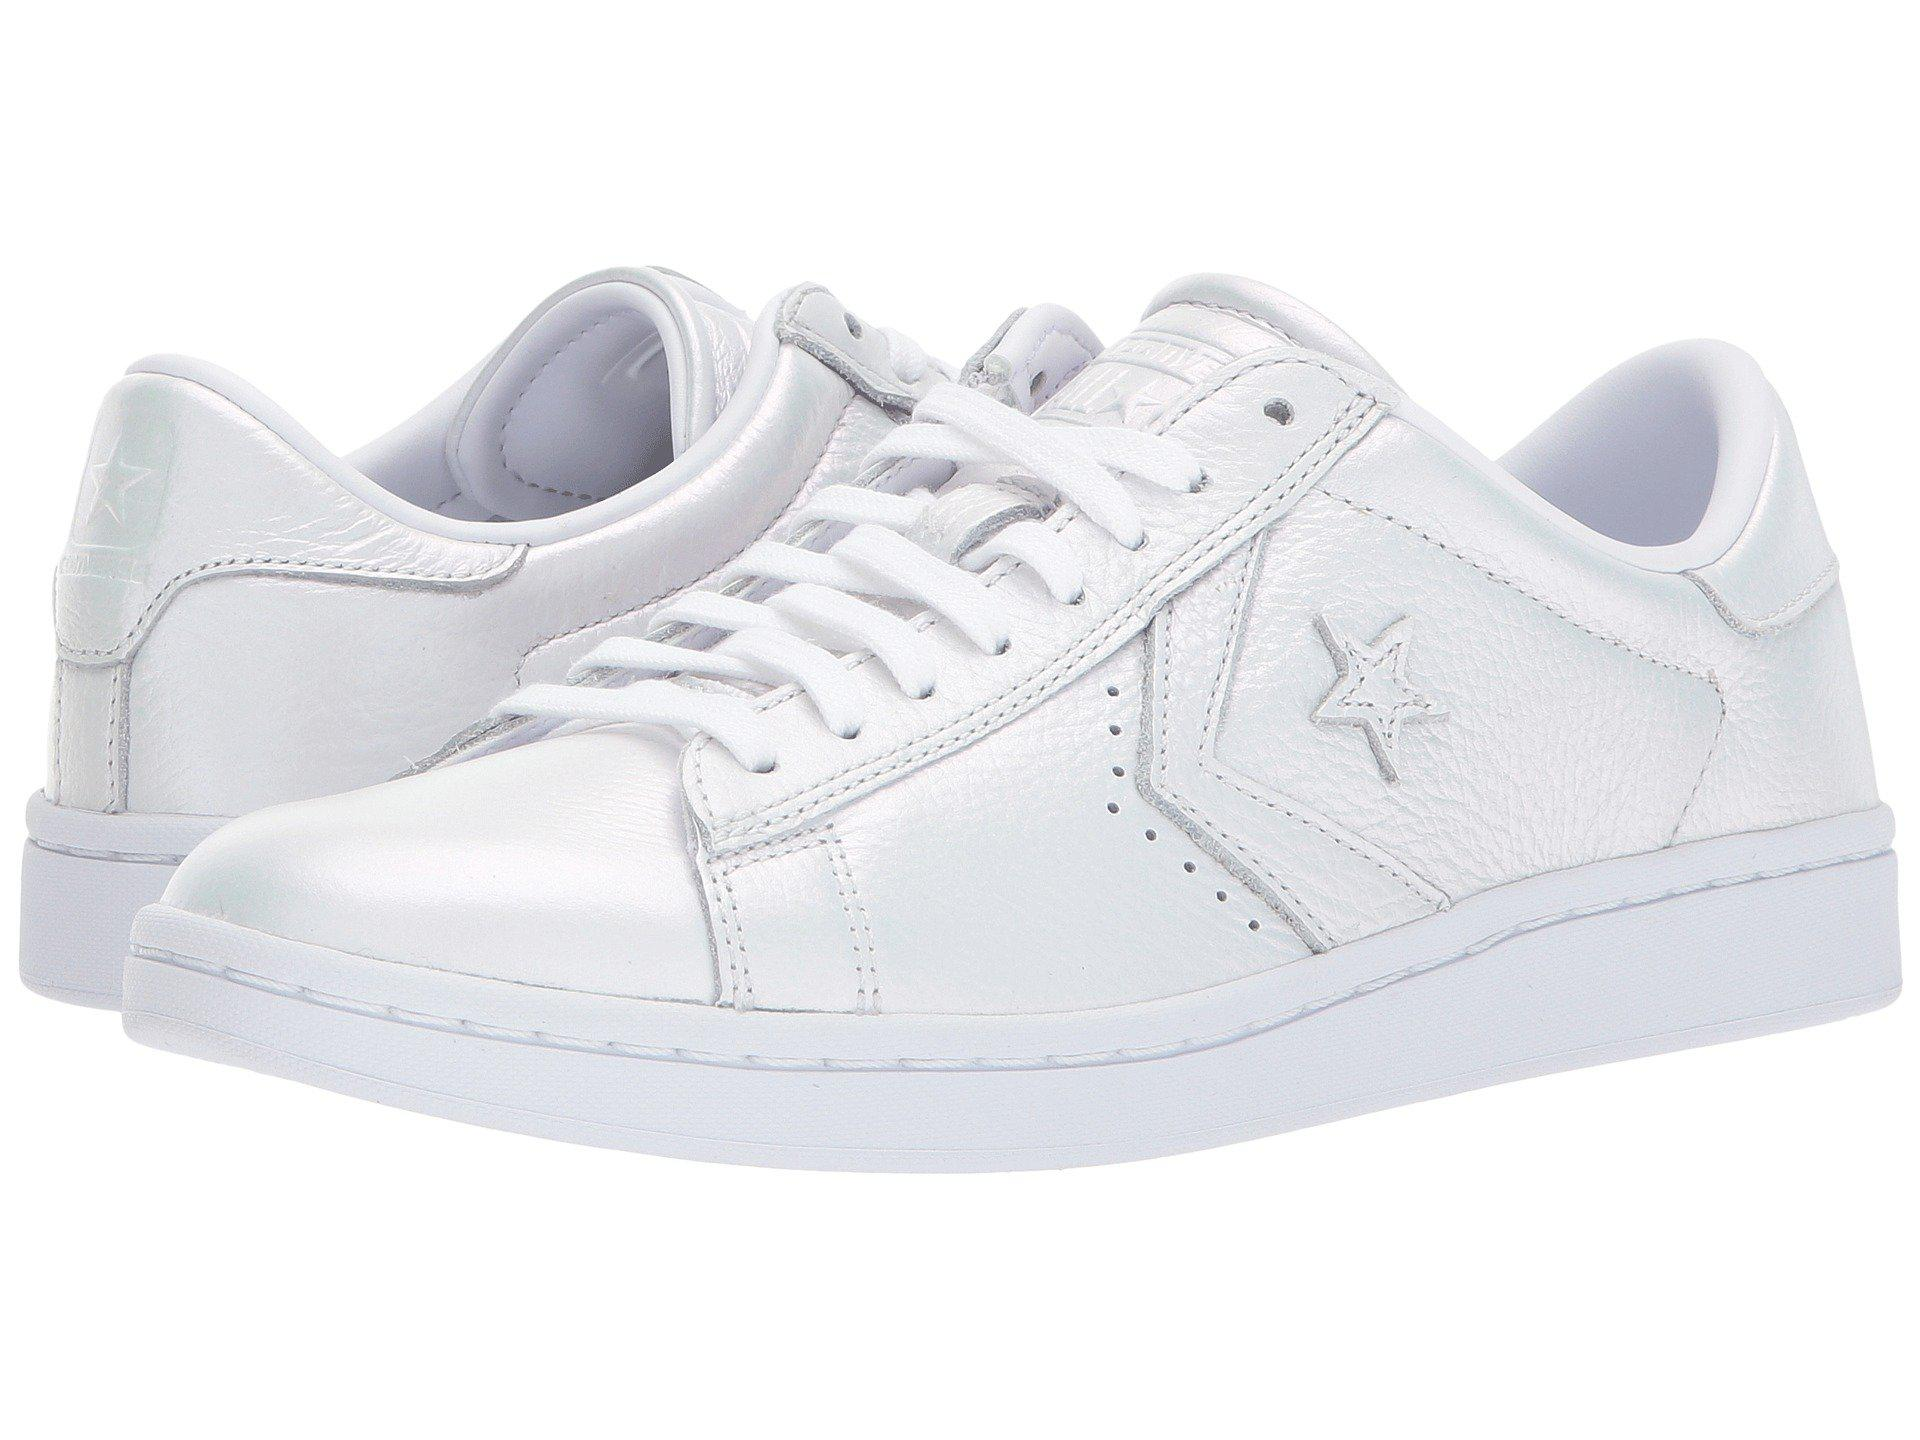 966ca06a3d2 Lyst - Converse Pro Leather Lp Iridescent Leather Ox in White